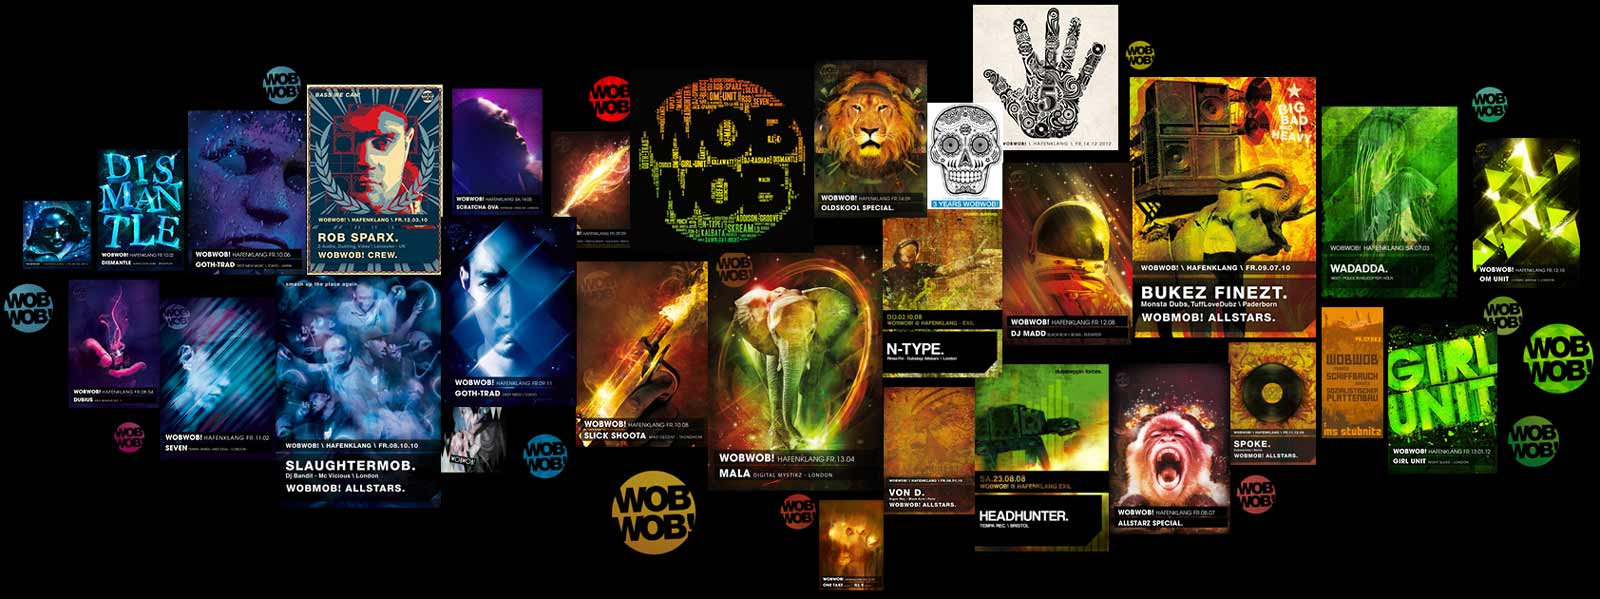 wobwob dubstep/bass flyer 2007 - 2015